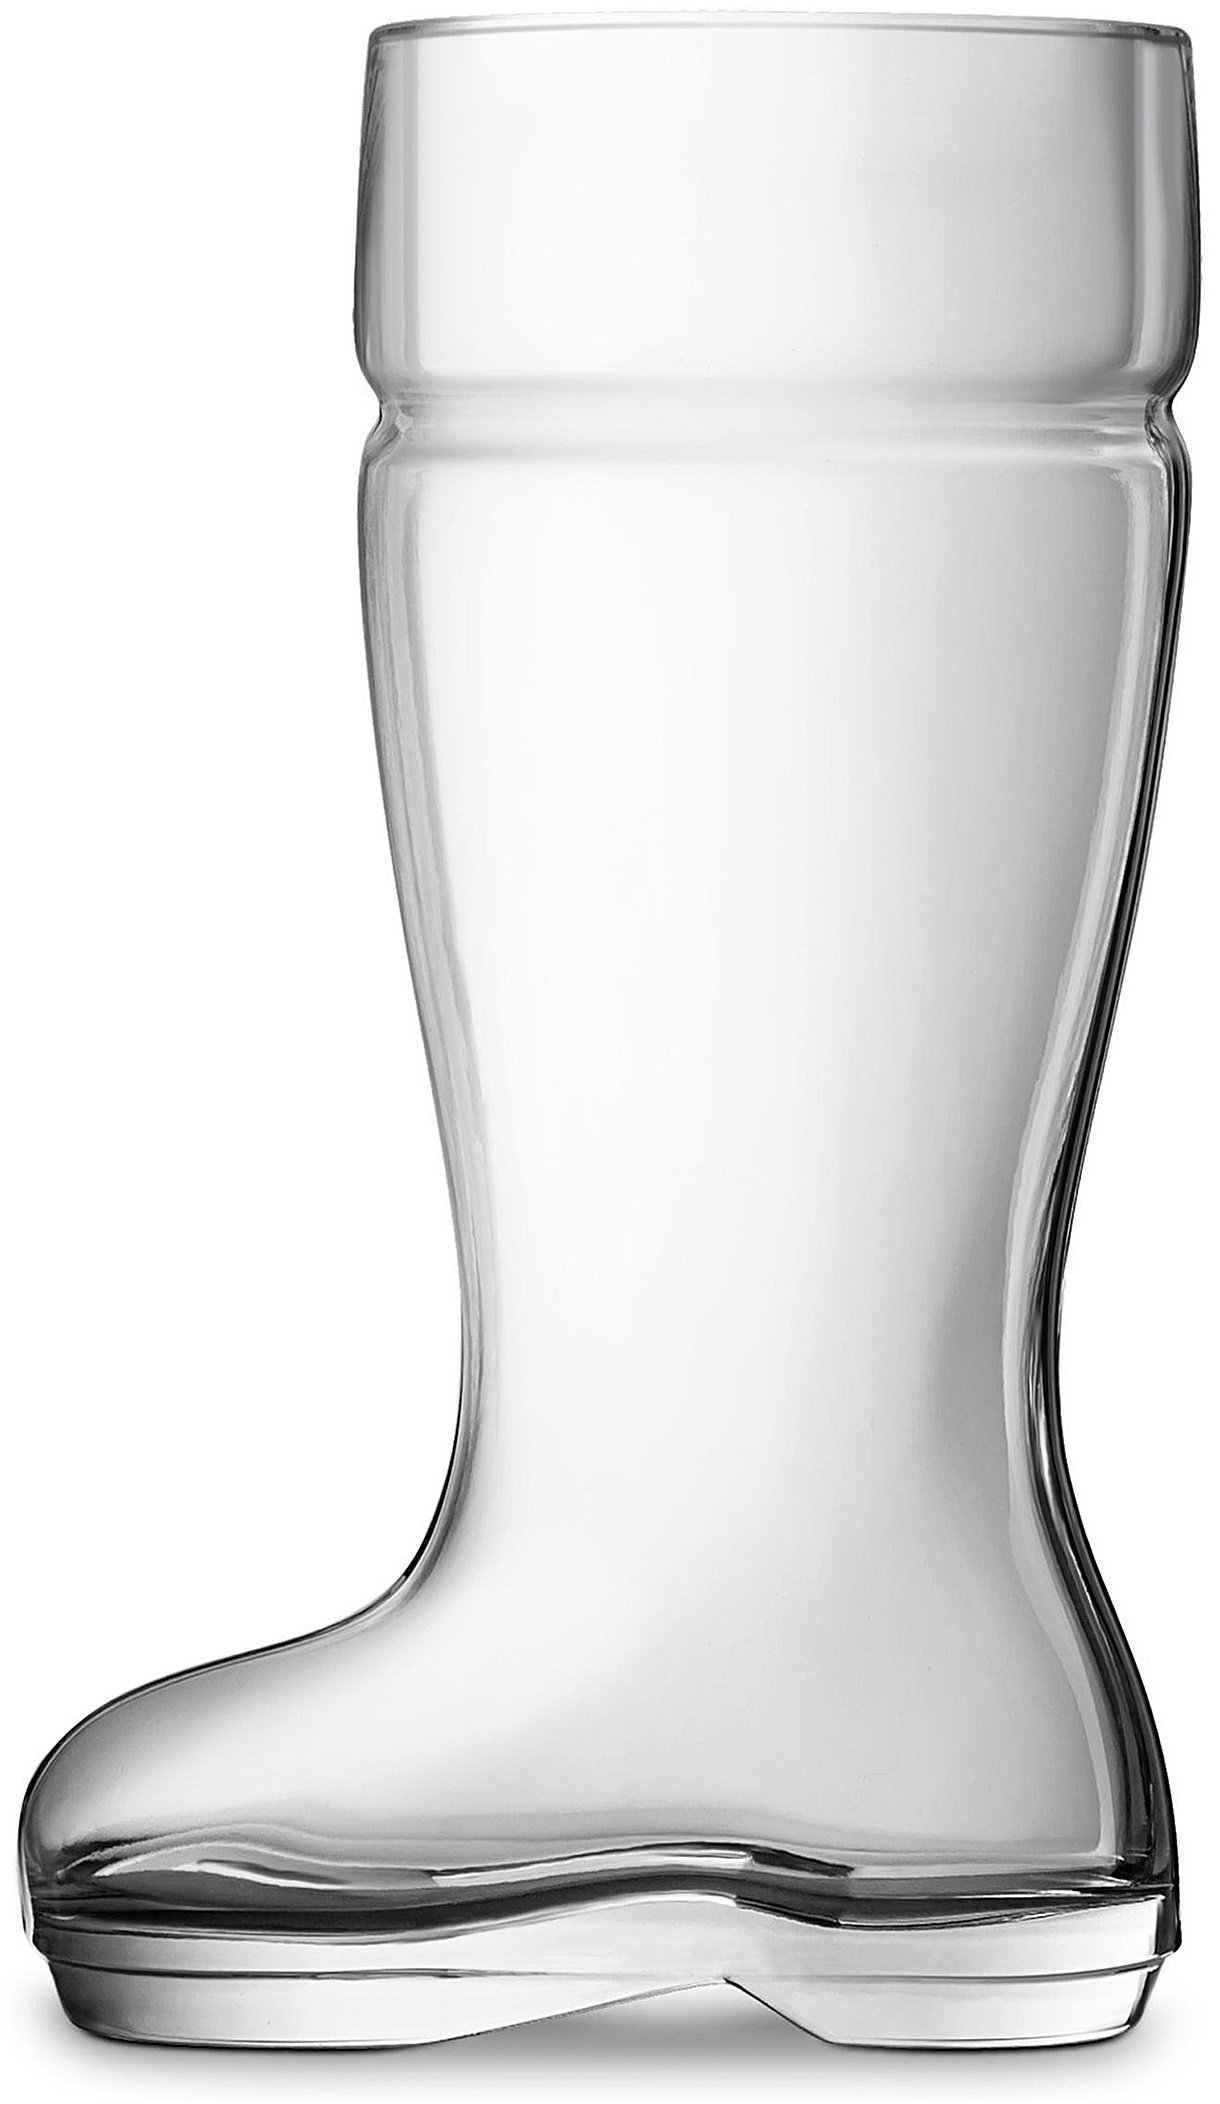 Circleware Das Boot Glass Beer Glasses Drinking Mug, Funny Shaped Entertainment Beverage Glassware for Water, Juice, Iced Tea, Liquor and Bar Barrel Liquor Dining Decor, 1 Boot, Large 1 Liter by Circleware (Image #2)